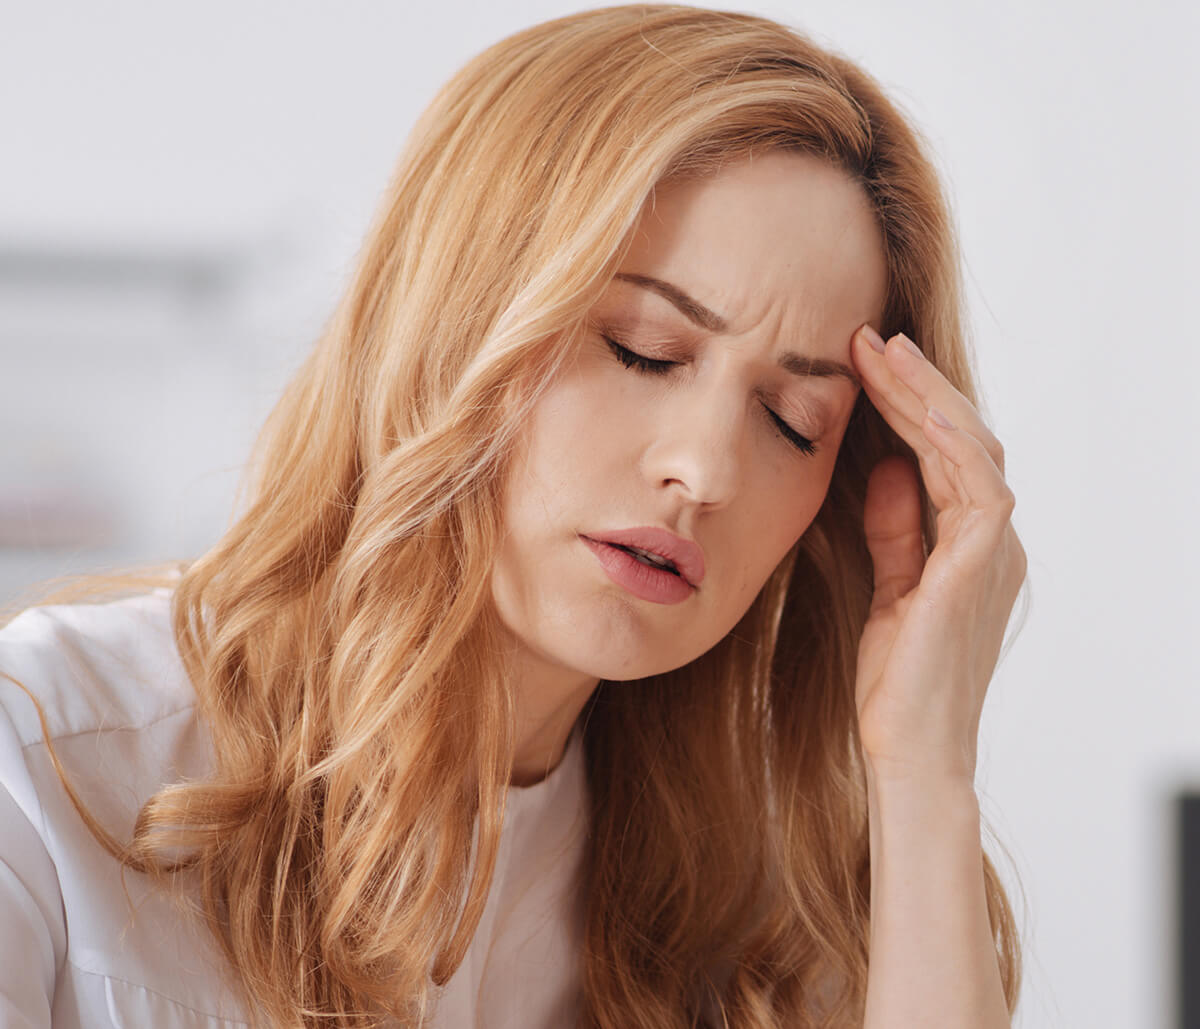 Dentist in Lakewood, CO Area Offers Migraine Relief Solutions